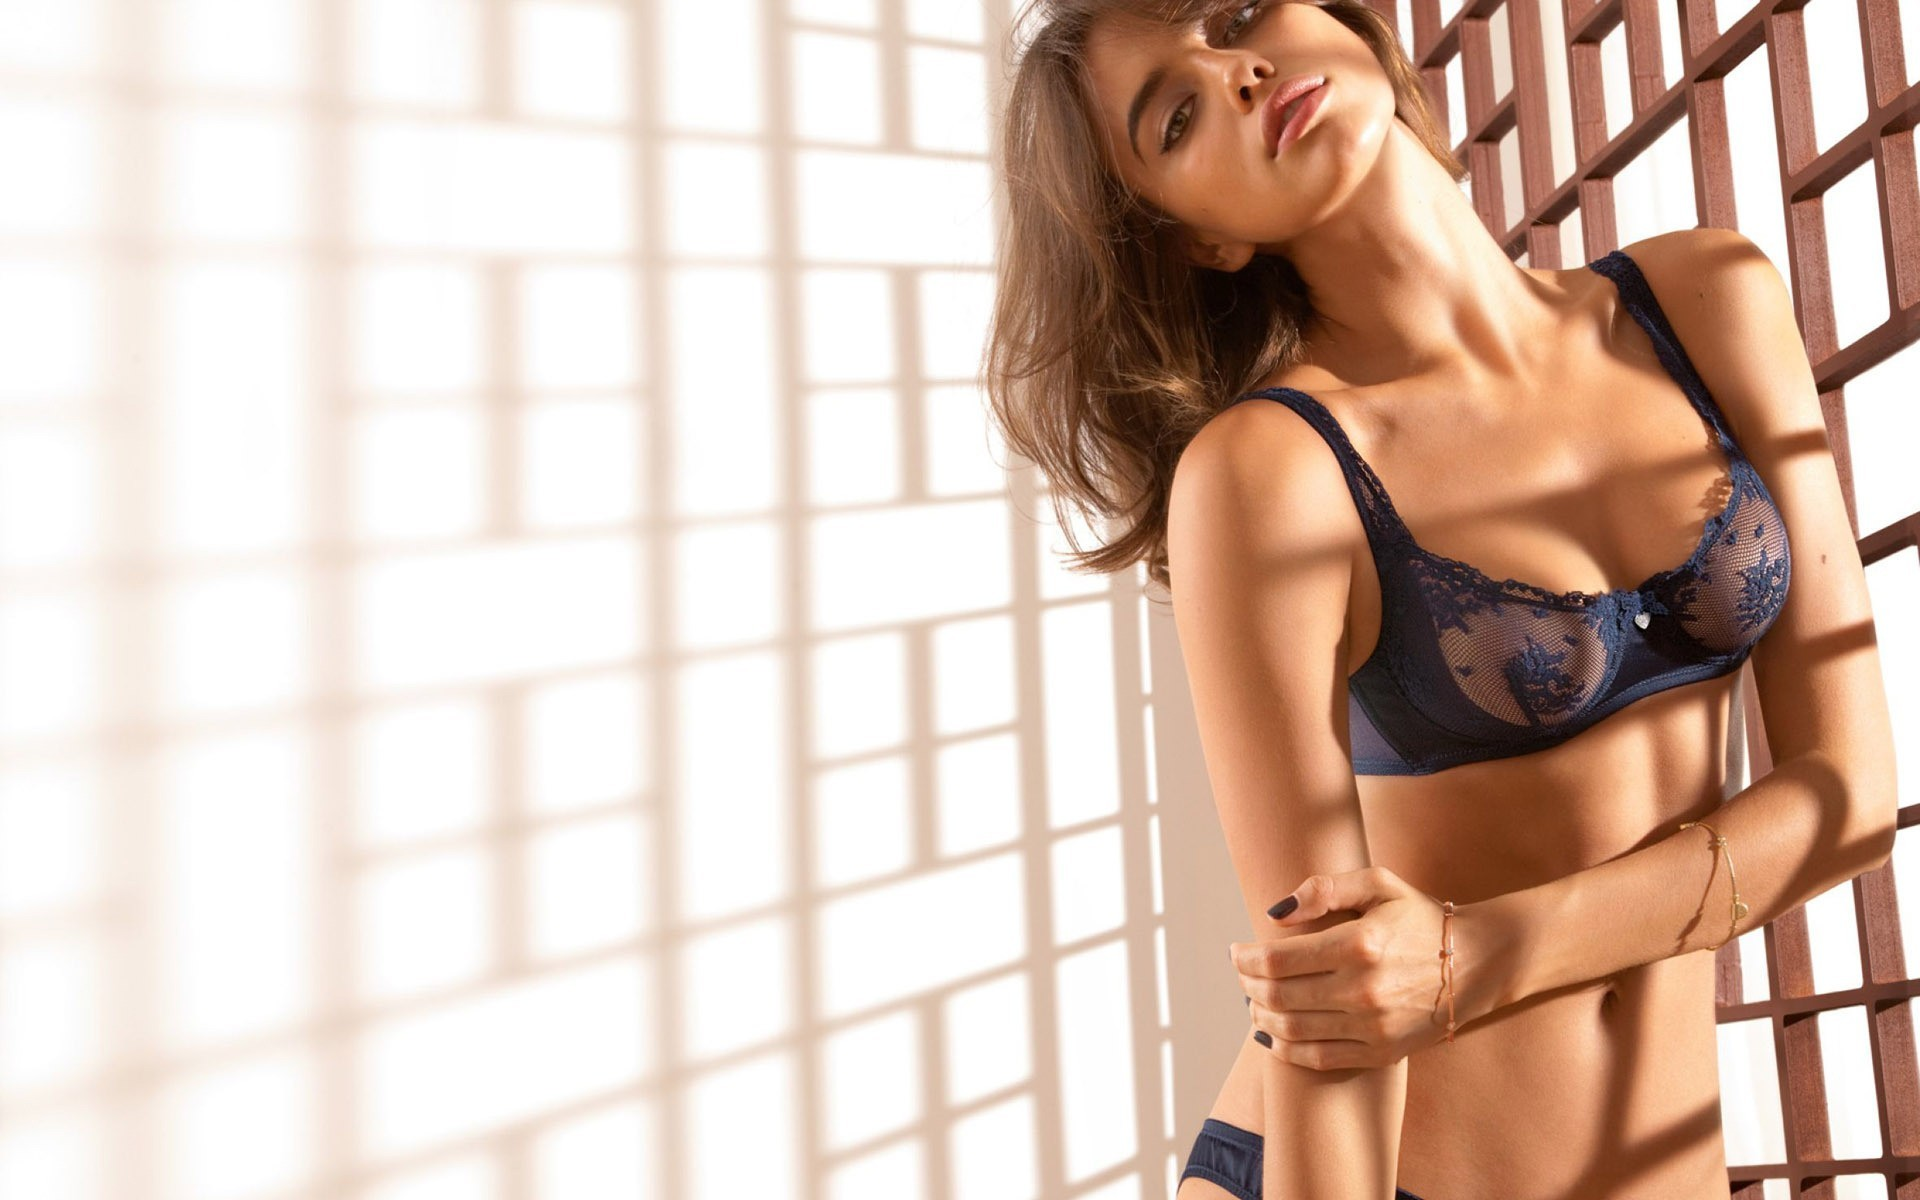 lingerie woman irina shayk HD Wallpaper